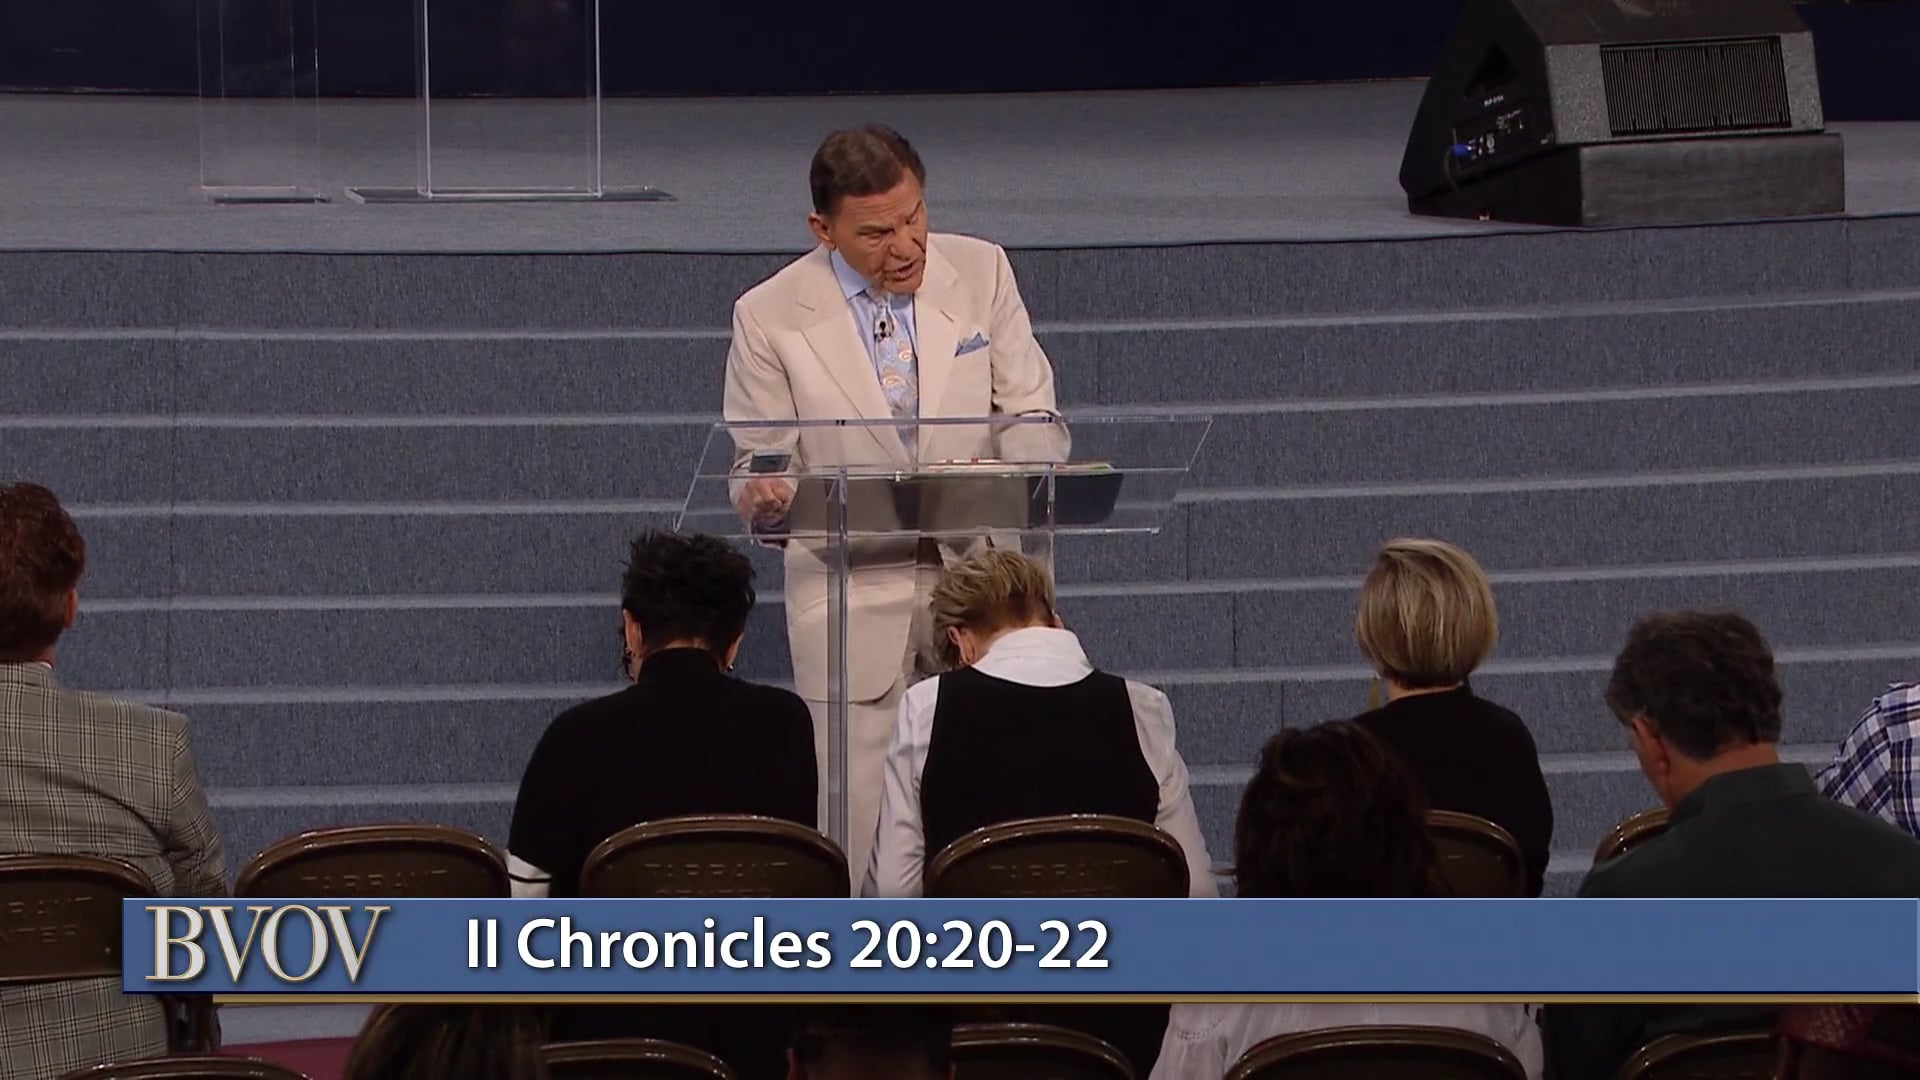 God's covenant promises provide healing, protection, prosperity and much more to all who will believe His WORD. Today, on Believer's Voice of Victory, Kenneth Copeland teaches from The WORD of God how to access the abundant blessings in His covenant.